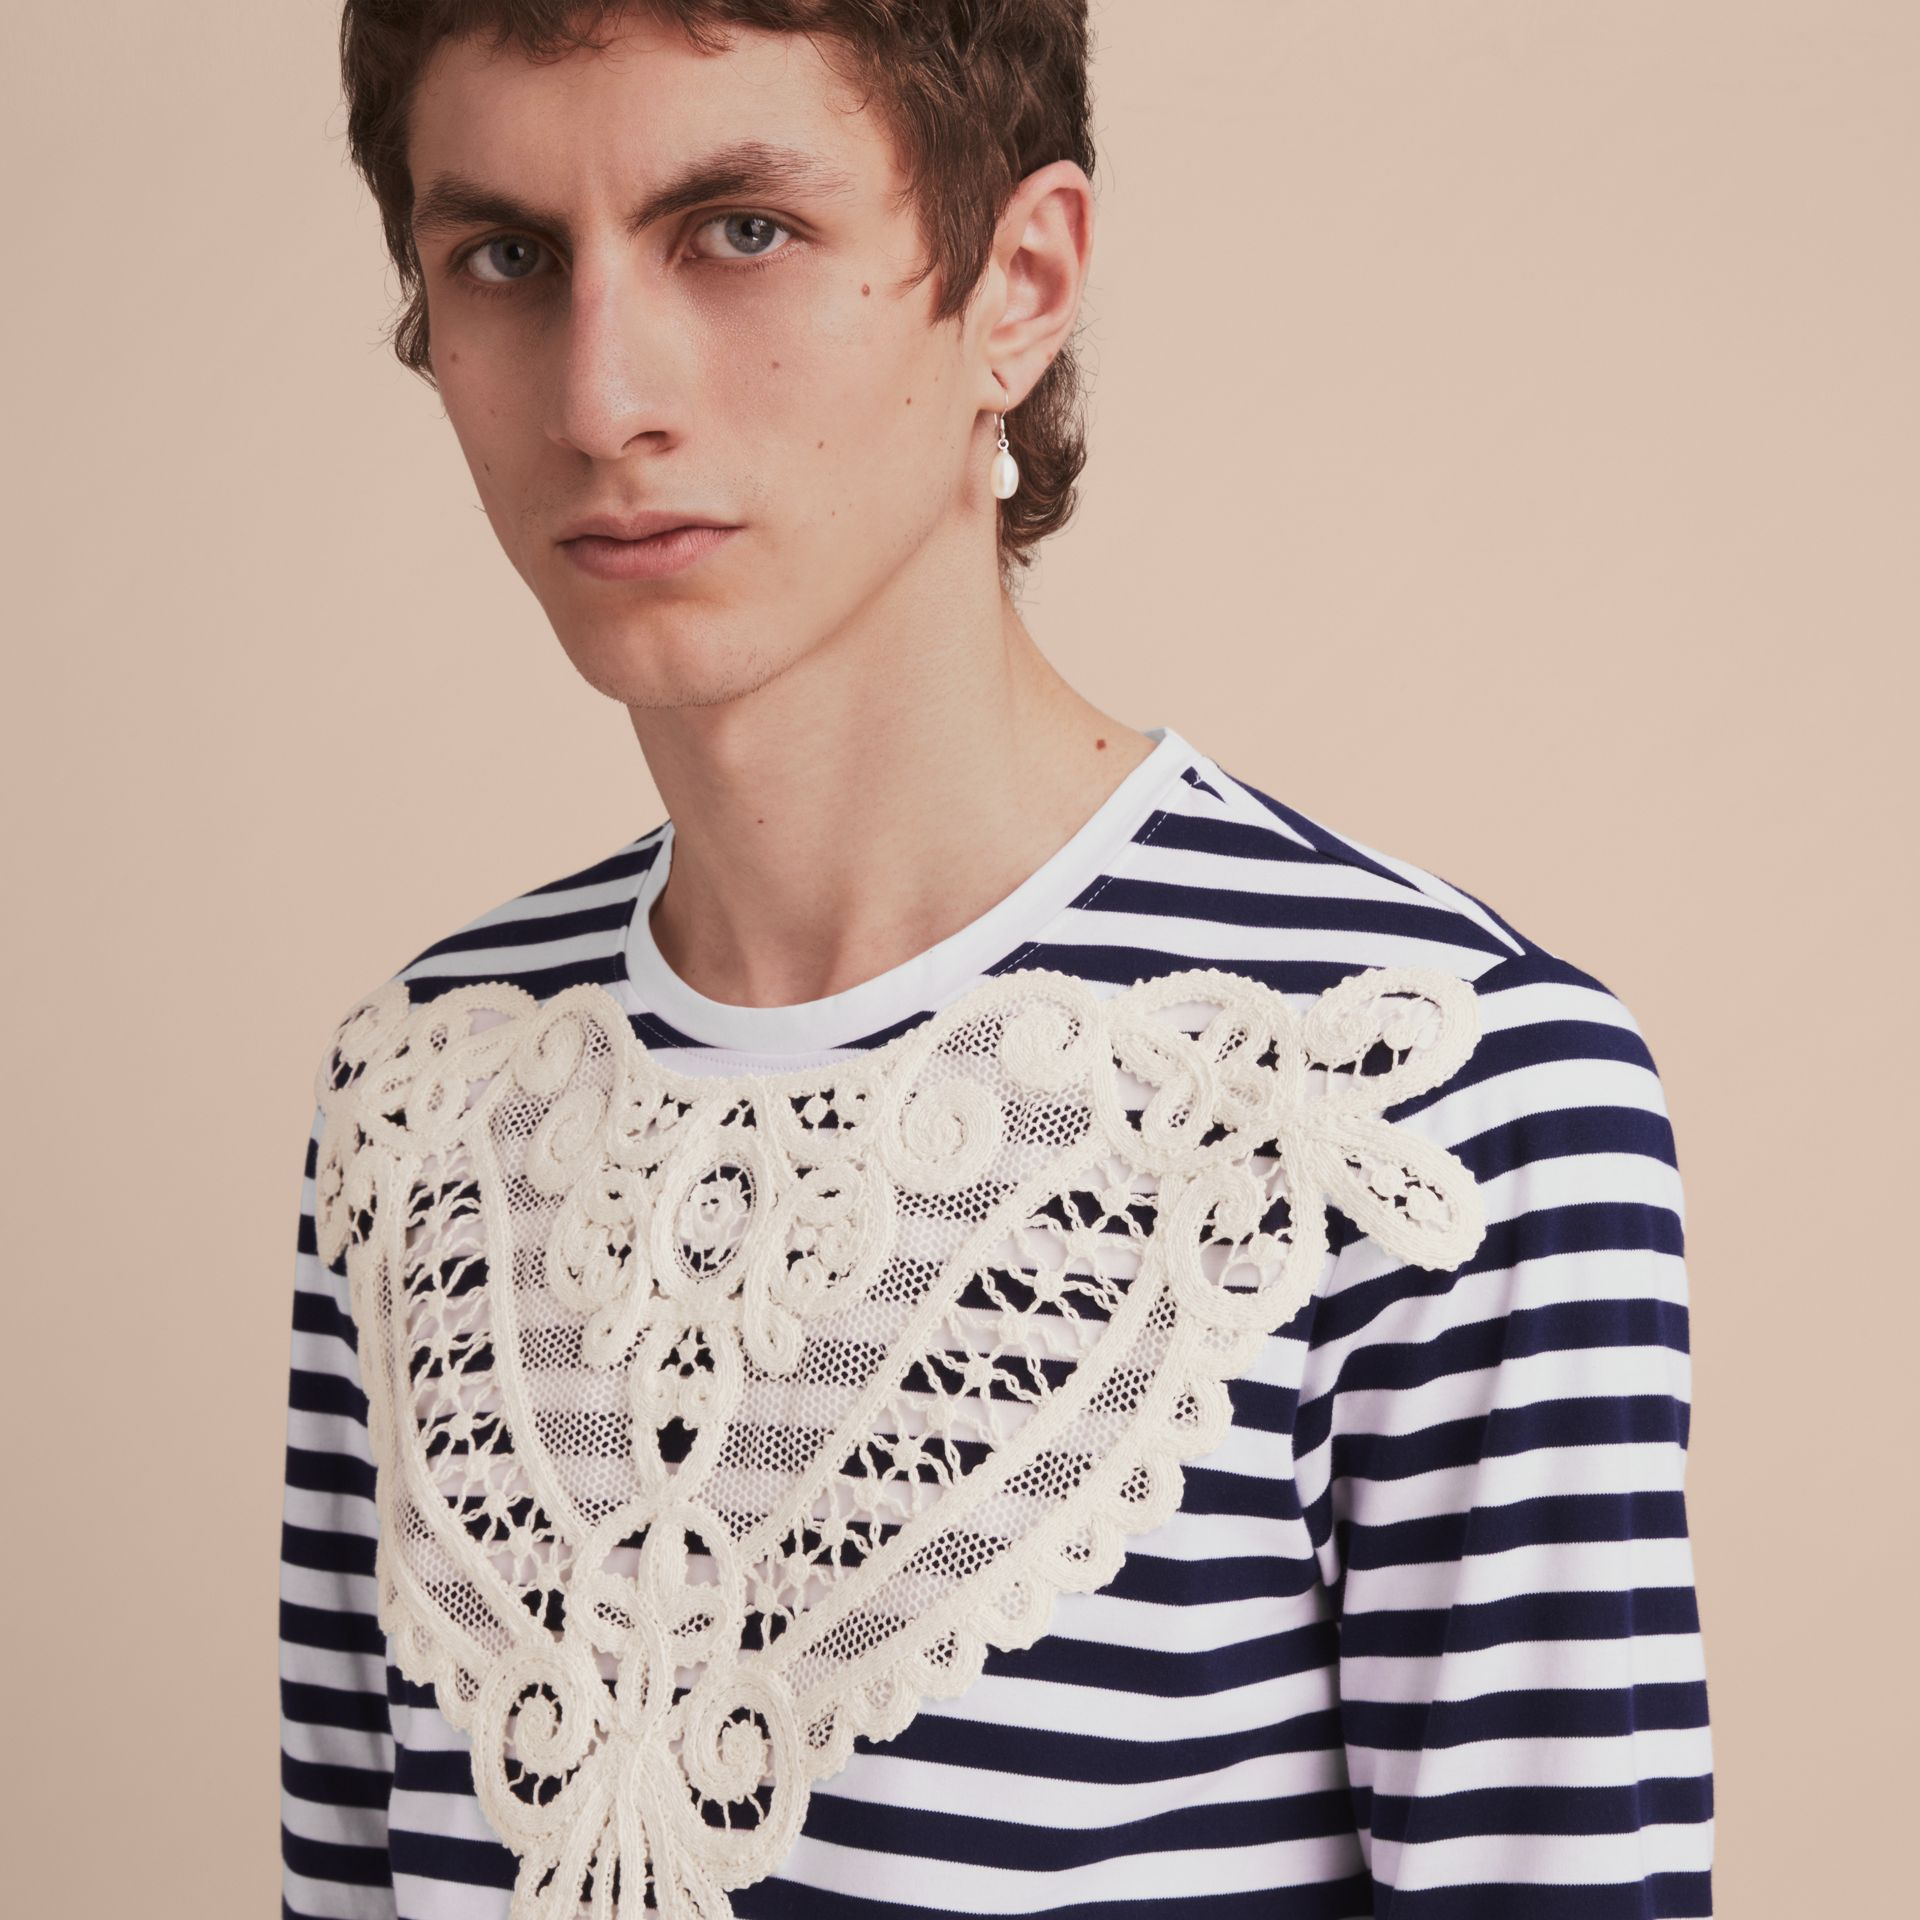 Unisex Breton Stripe Cotton Top with Lace Appliqué in Indigo - Men | Burberry Canada - gallery image 6